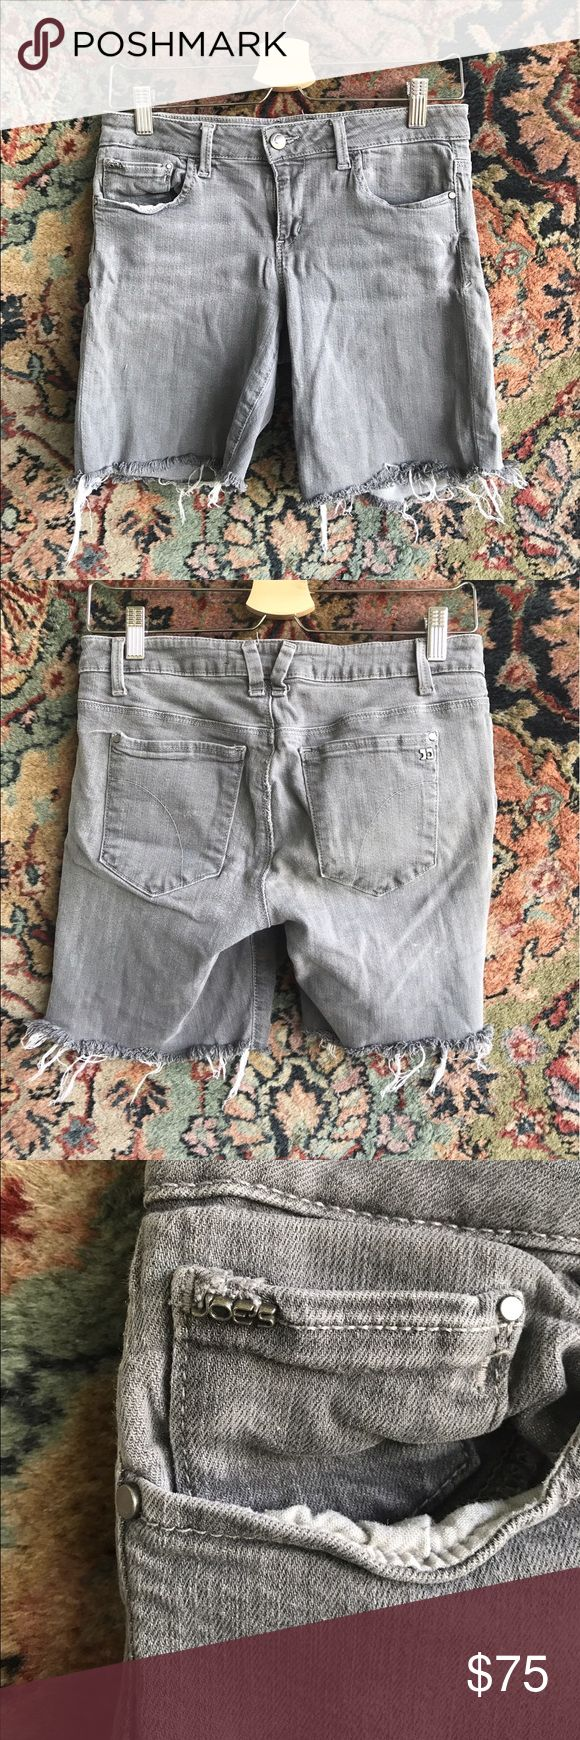 """Joes Jeans Cigarette Cutoff Jean Shorts Soft, broken in and cool! Fringed and cozy! In excellent condition. 14.5"""" waist, 8"""" rise and 7"""" inseam Joe's Jeans Shorts Jean Shorts"""